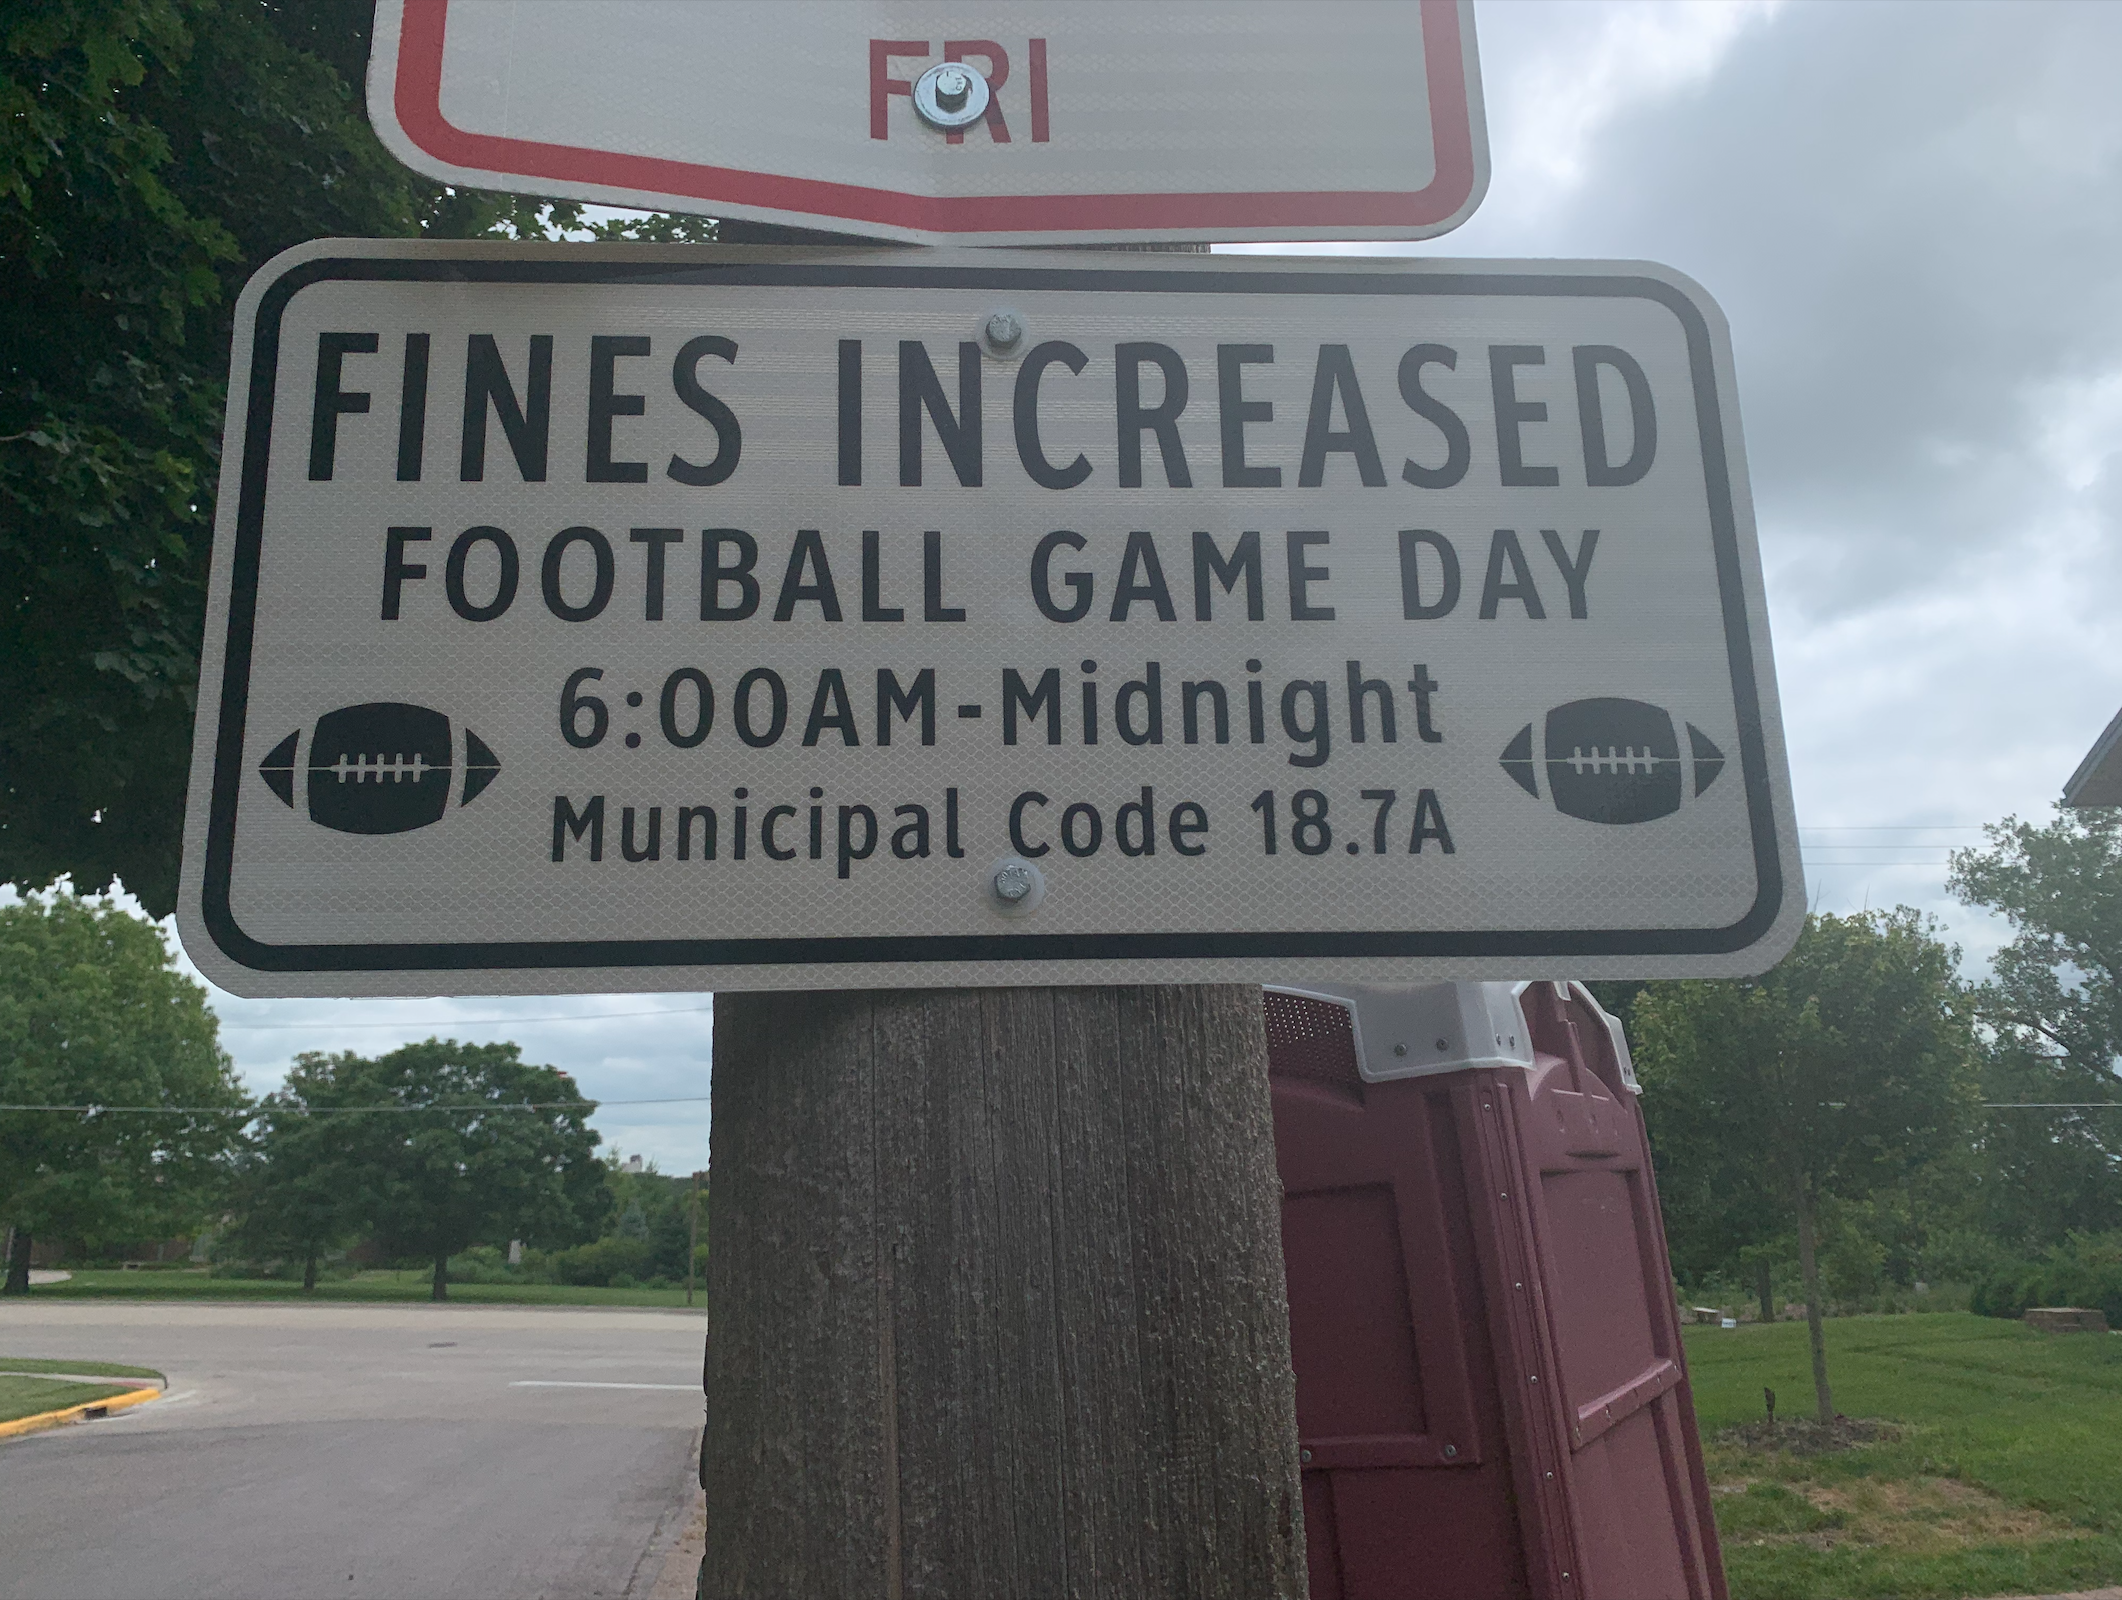 """A traffic sign (white rectangle, black text) that reads """"Fines Increased. Football Game Day. 6:00AM-Midnight. Municipal Code 18.7A"""""""